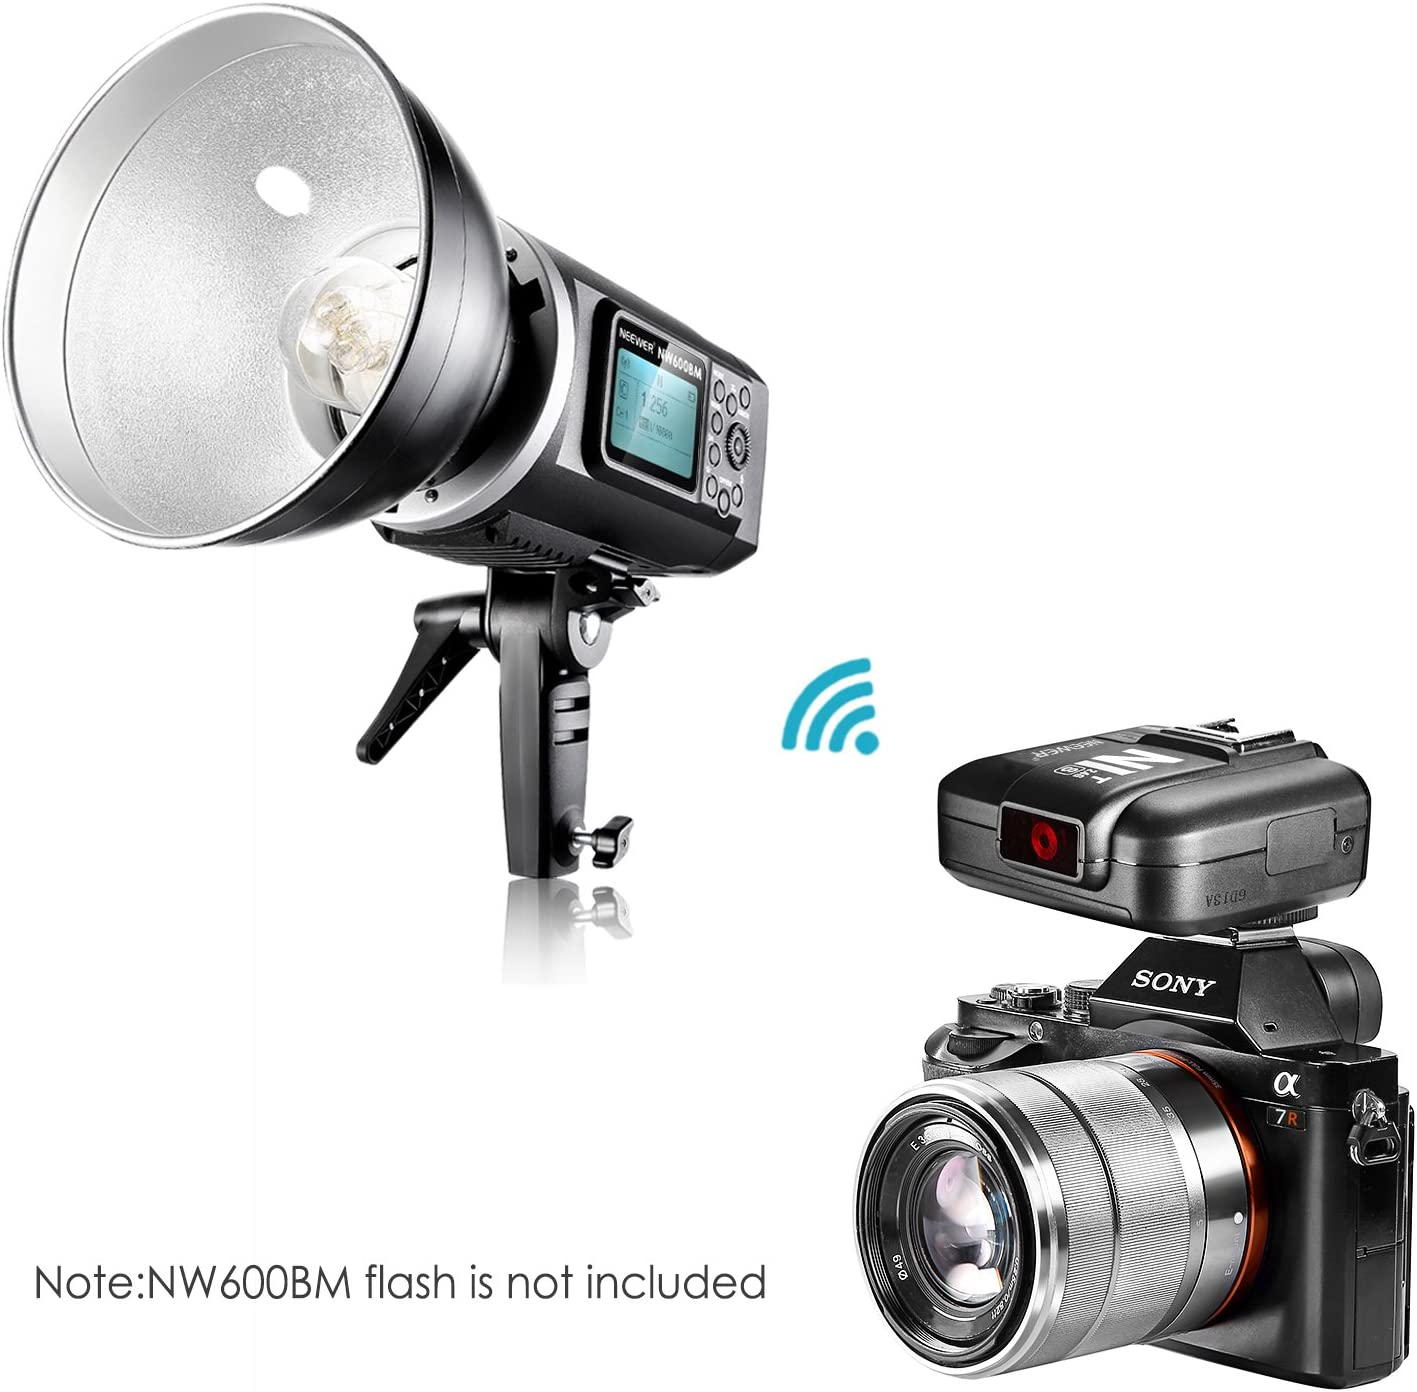 Neewer N1T-S TTL 2.4G 32 Channels Wireless Flash Trigger Transmitter for Sony A77II A7RII A7R A58 A99 A6000 Camera with Mi Hot Shoe Studio Flash and Flash Speedlite